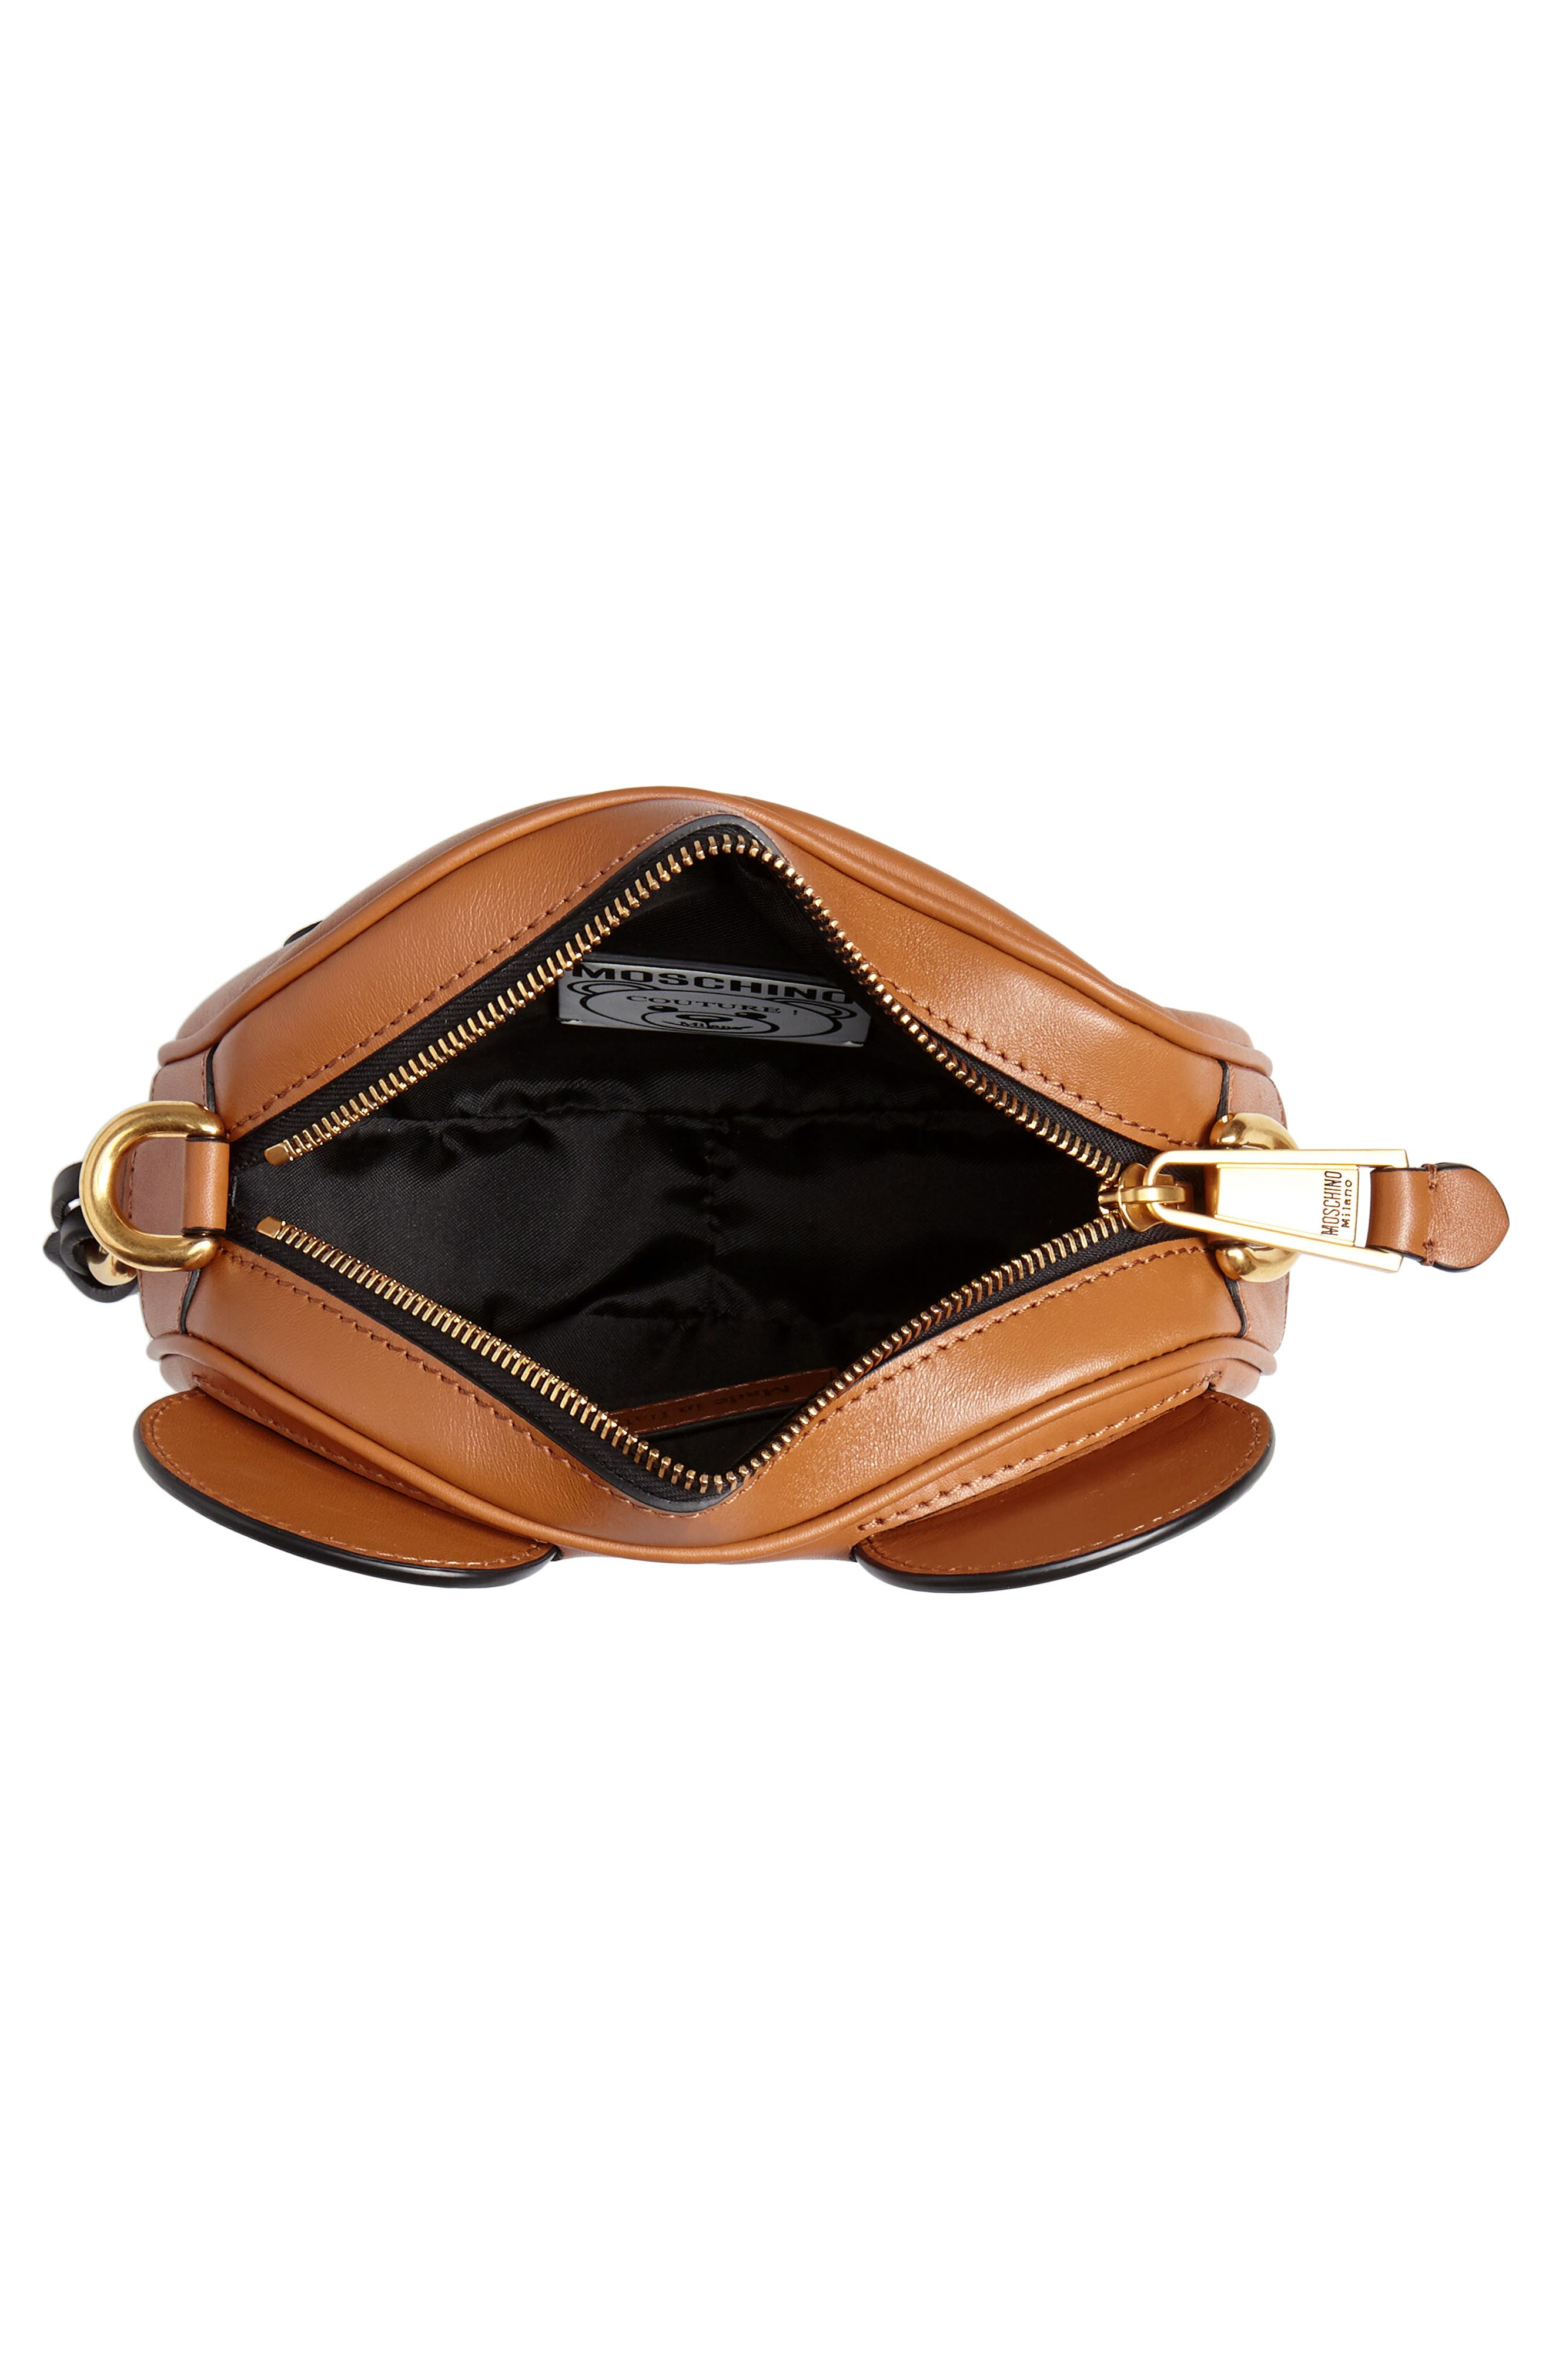 MOSCHINO, Crystal Teddy Leather Crossbody Bag, Alternate thumbnail 4, color, BROWN